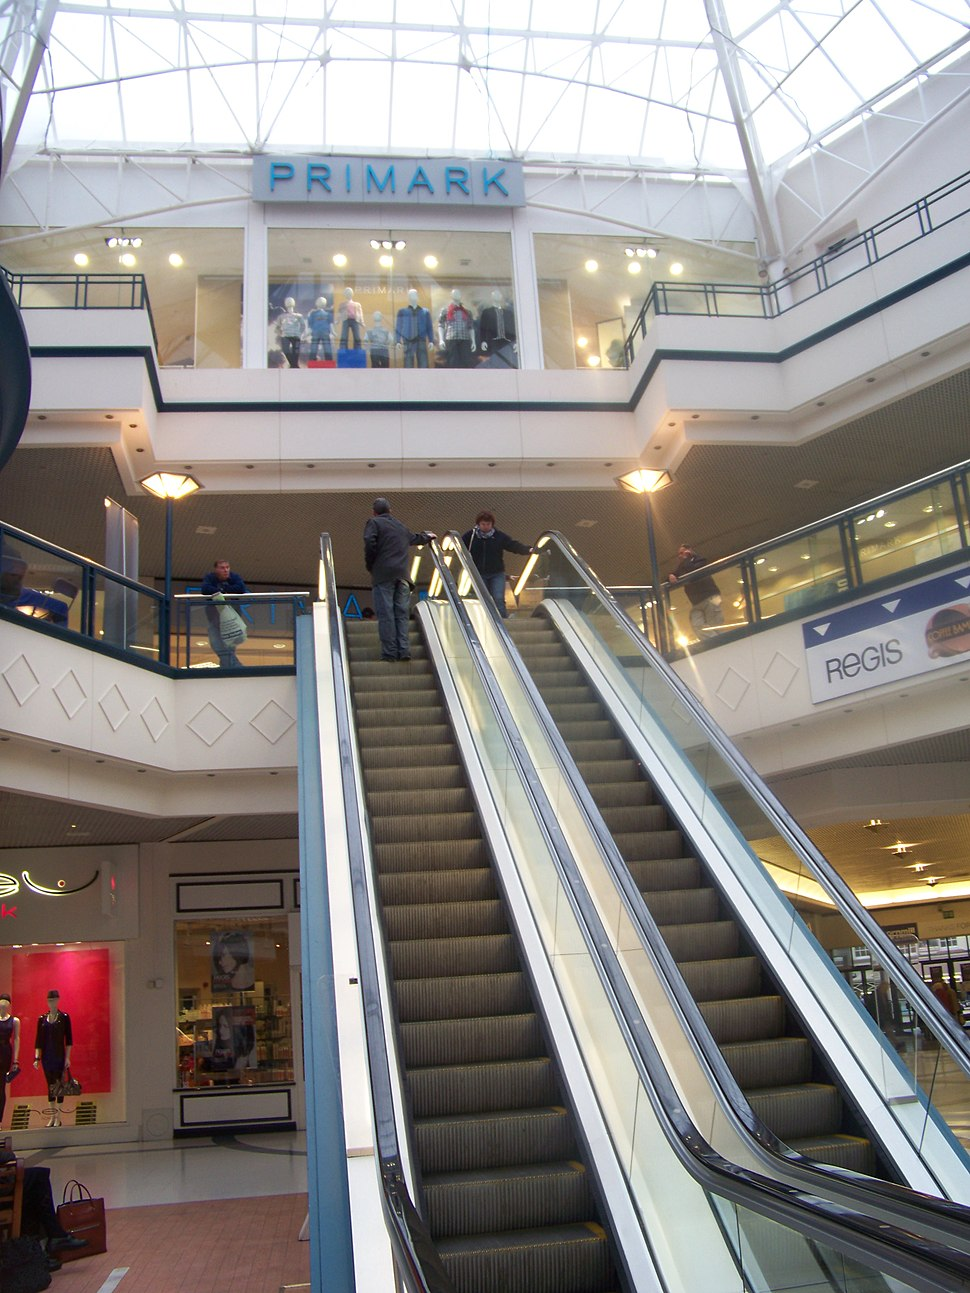 Primark in the Cornmill Centre, Darlington